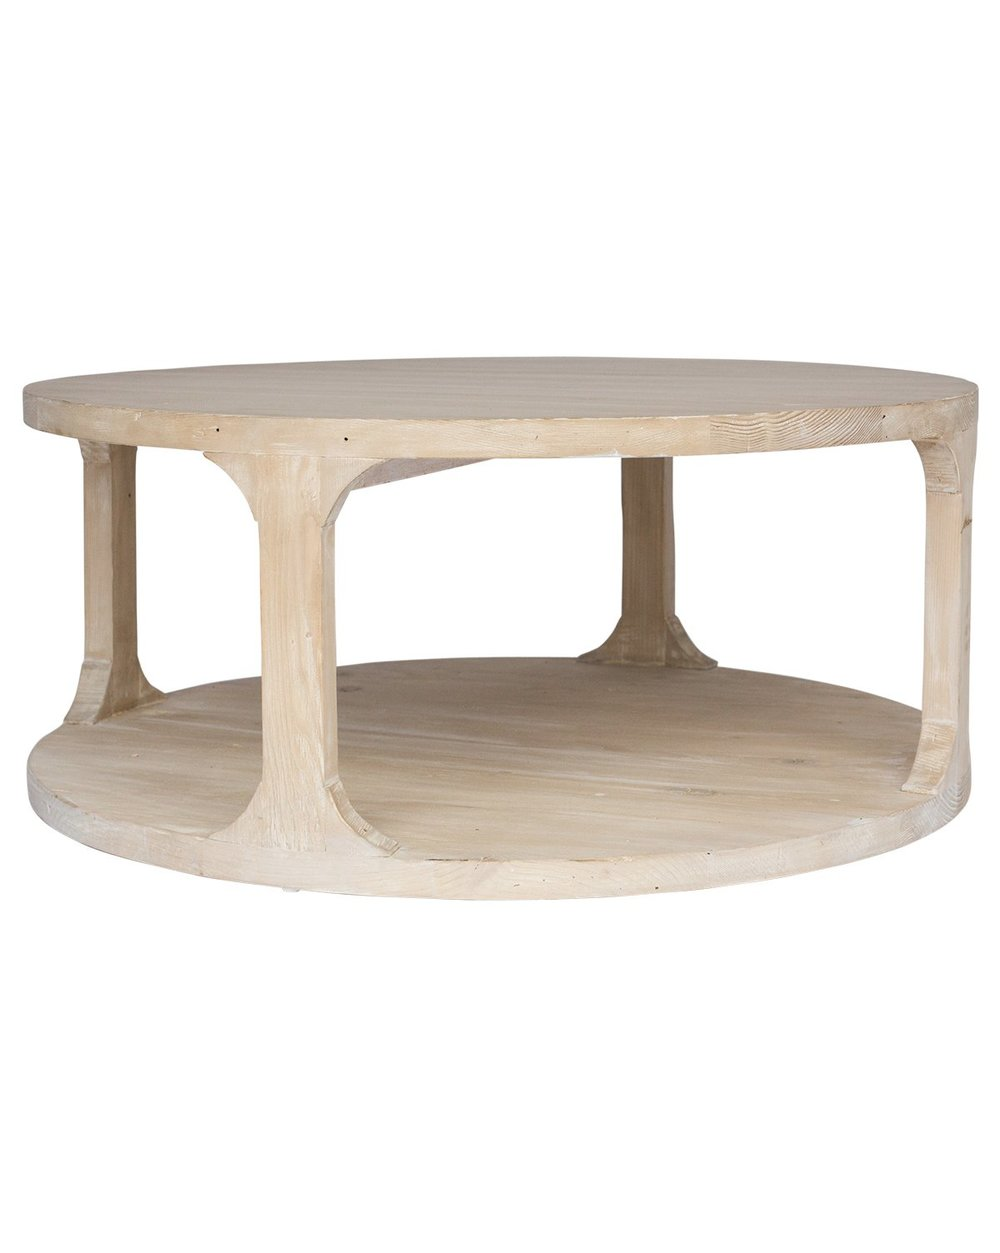 Grady_Coffee_Table_1.jpg